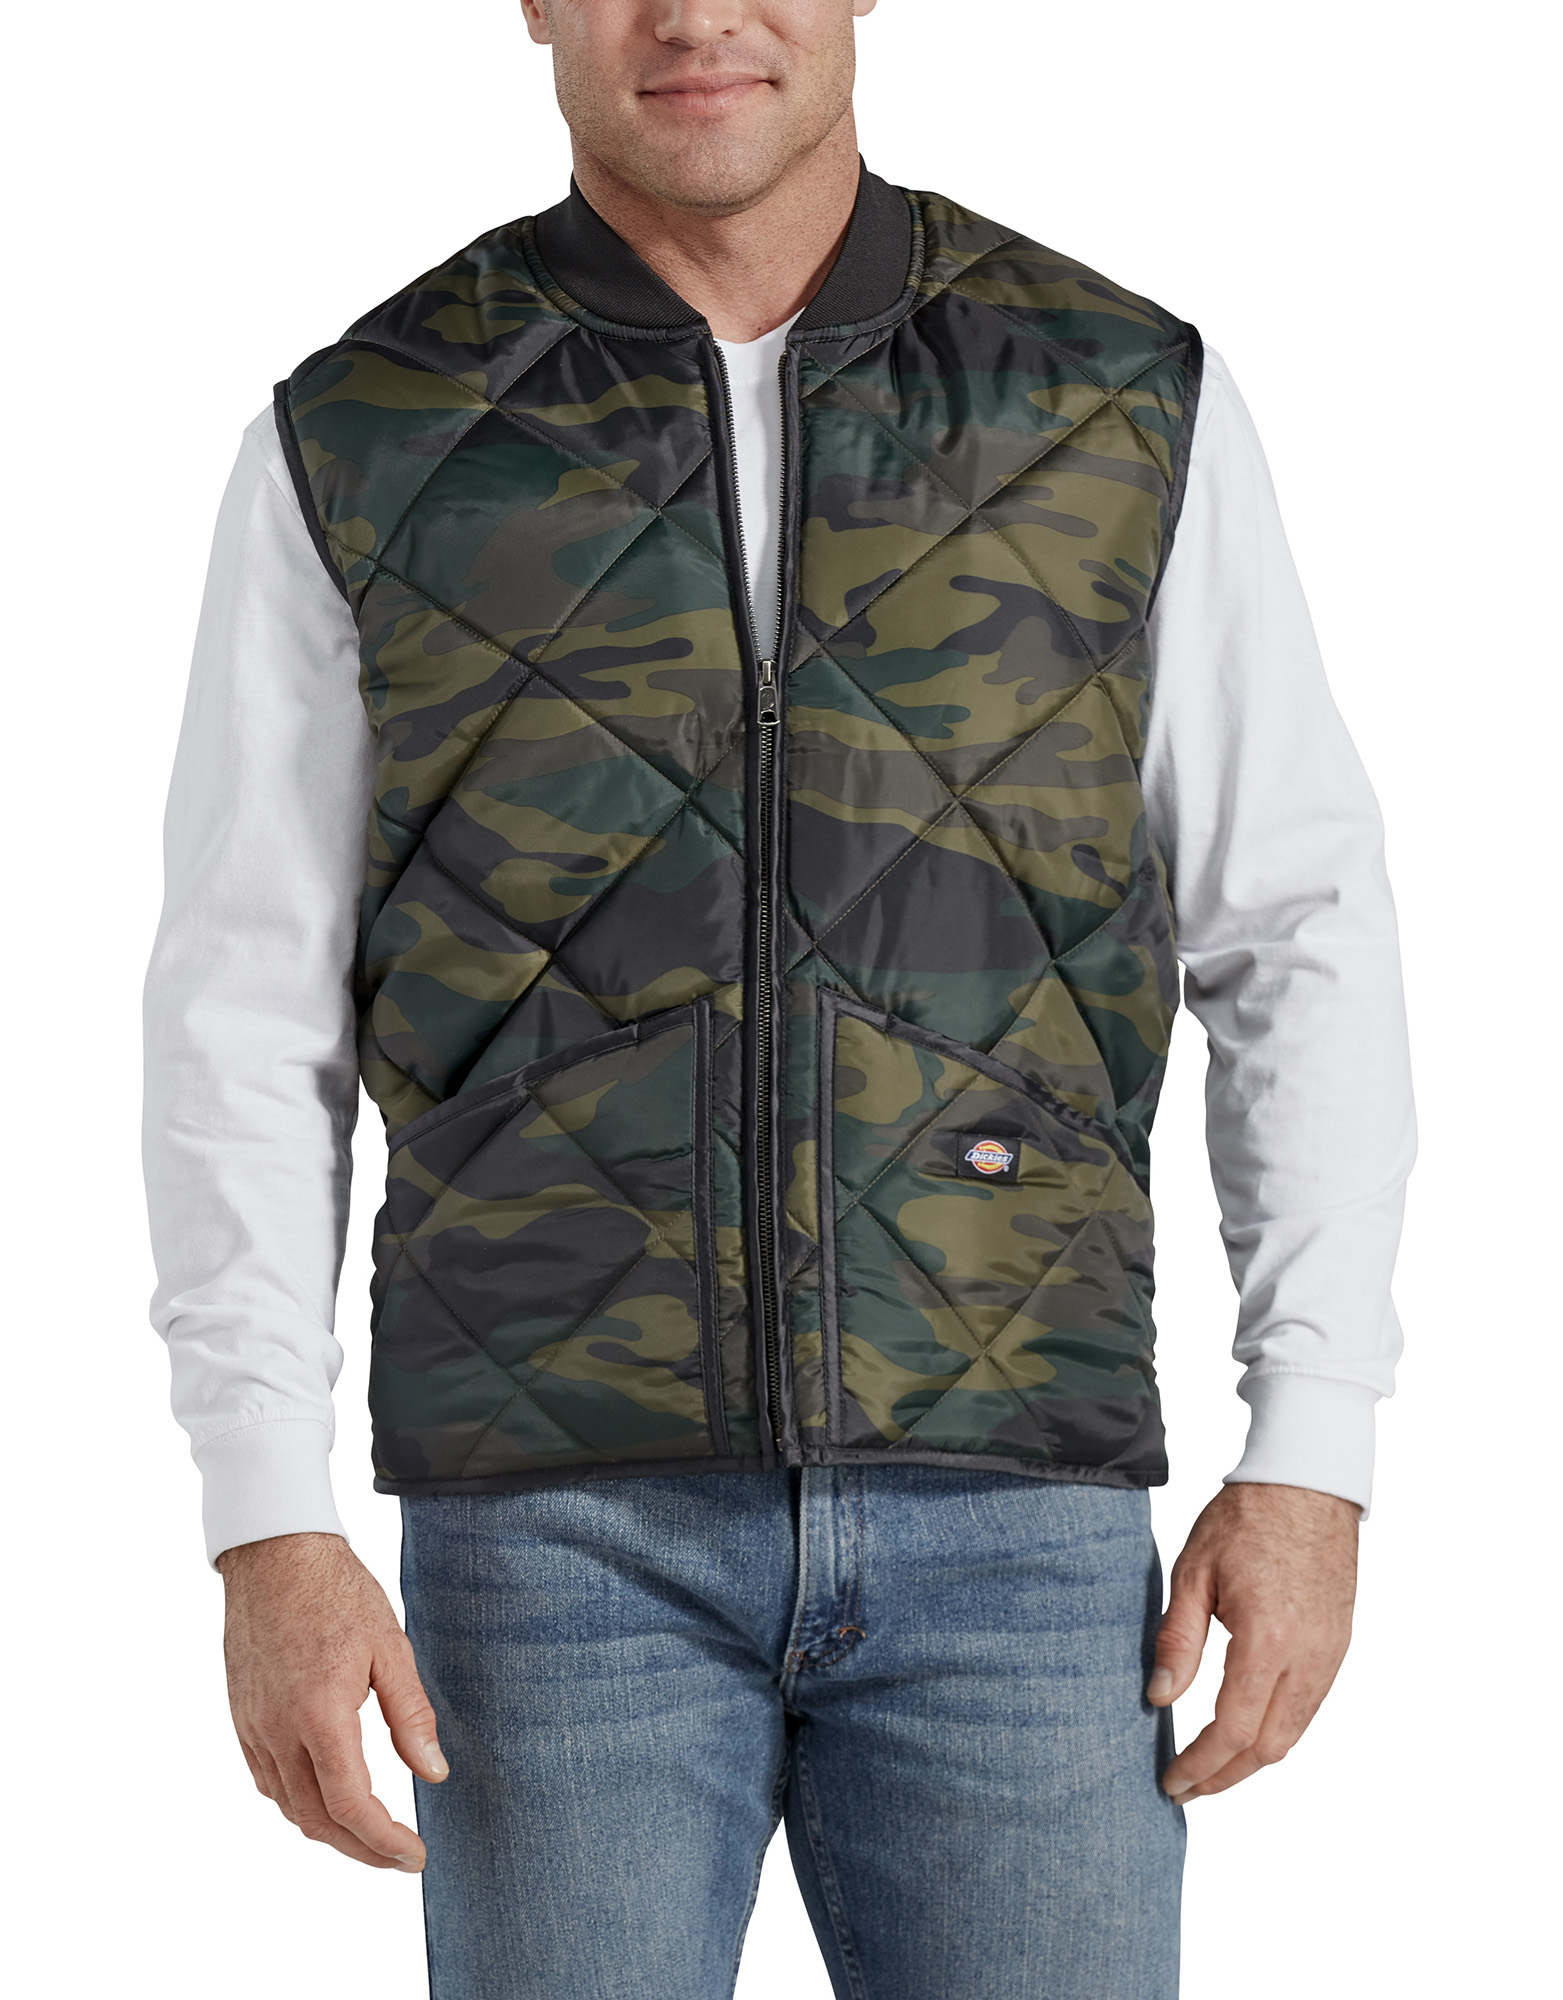 Camo Diamond Quilted Nylon Vest - Hunter Green Camo (HRC)